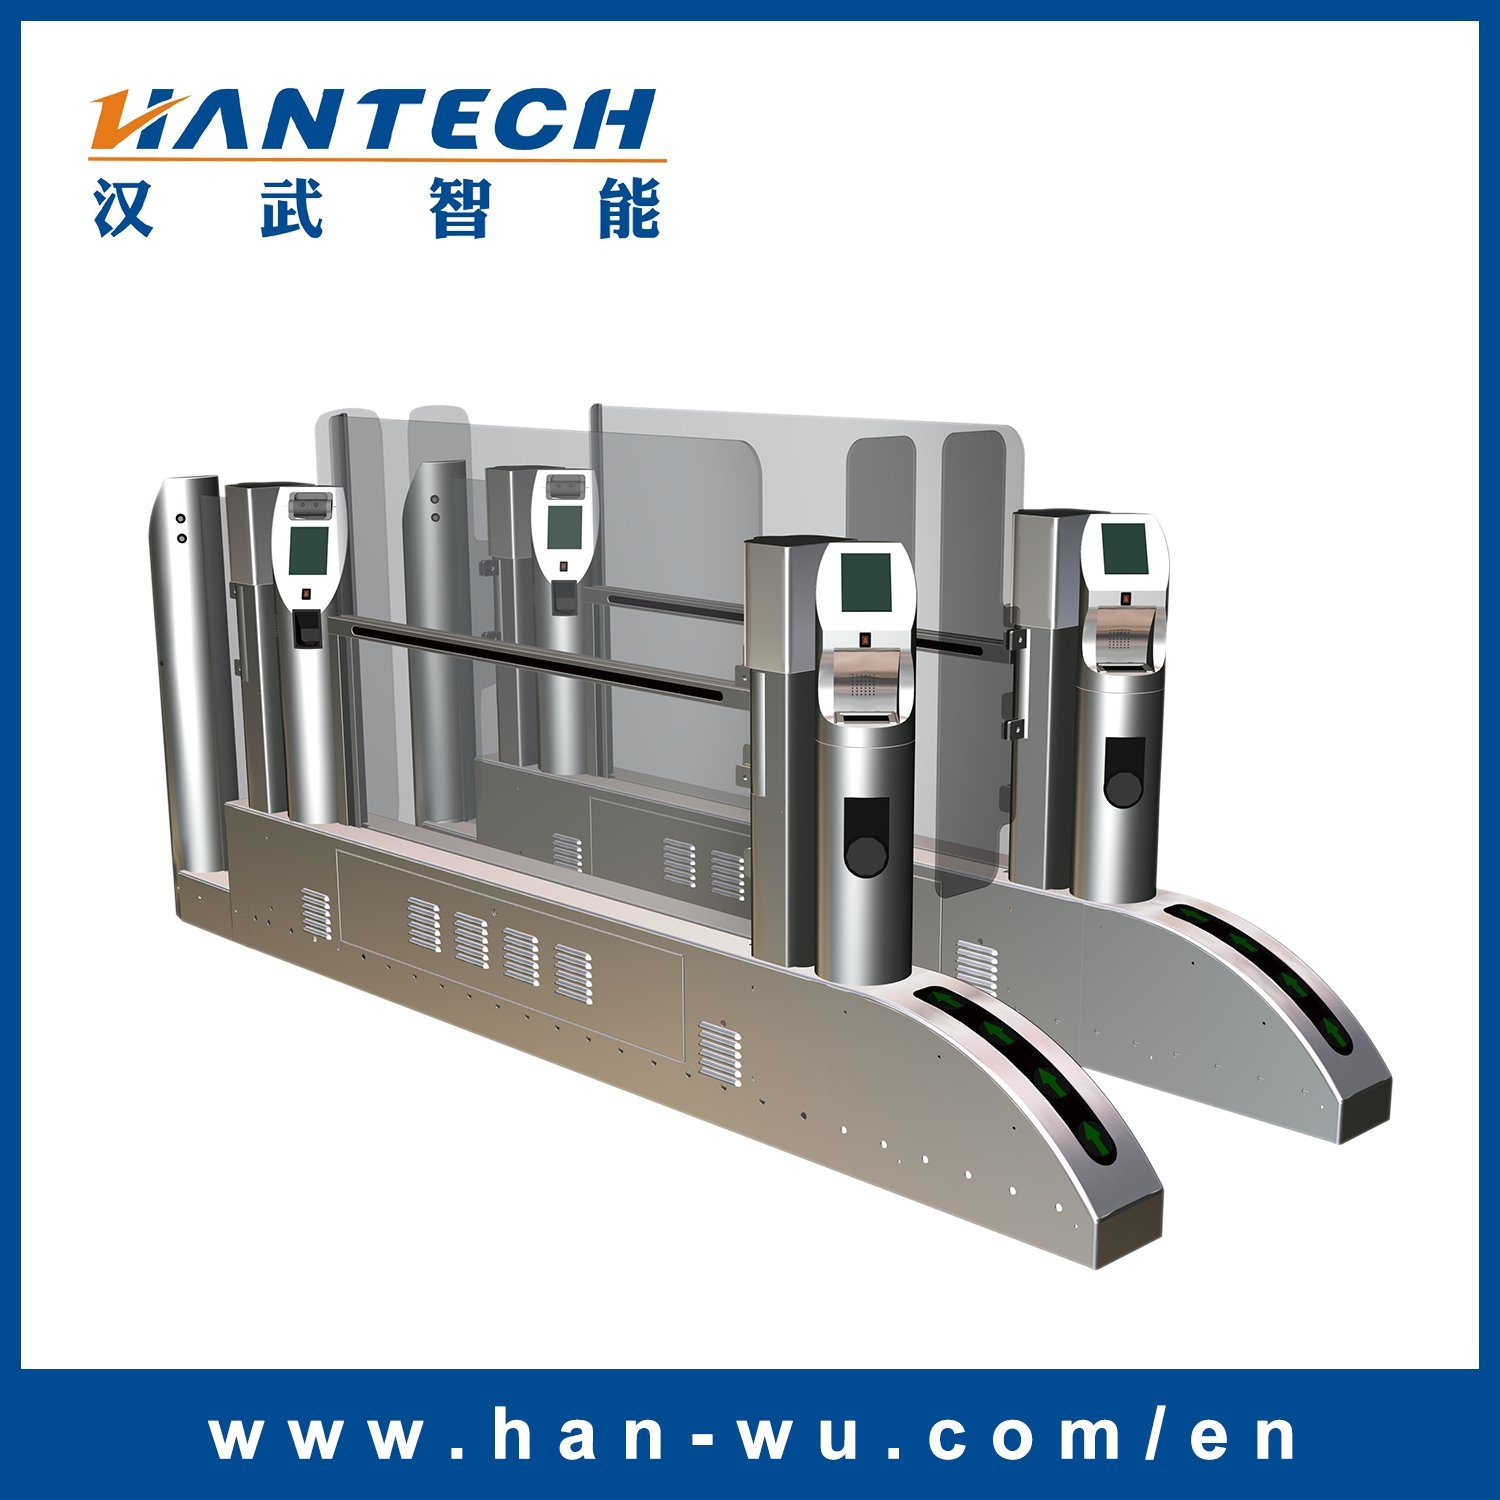 Automatic Boarding Gate with Barcode Scanning/Face Recognition